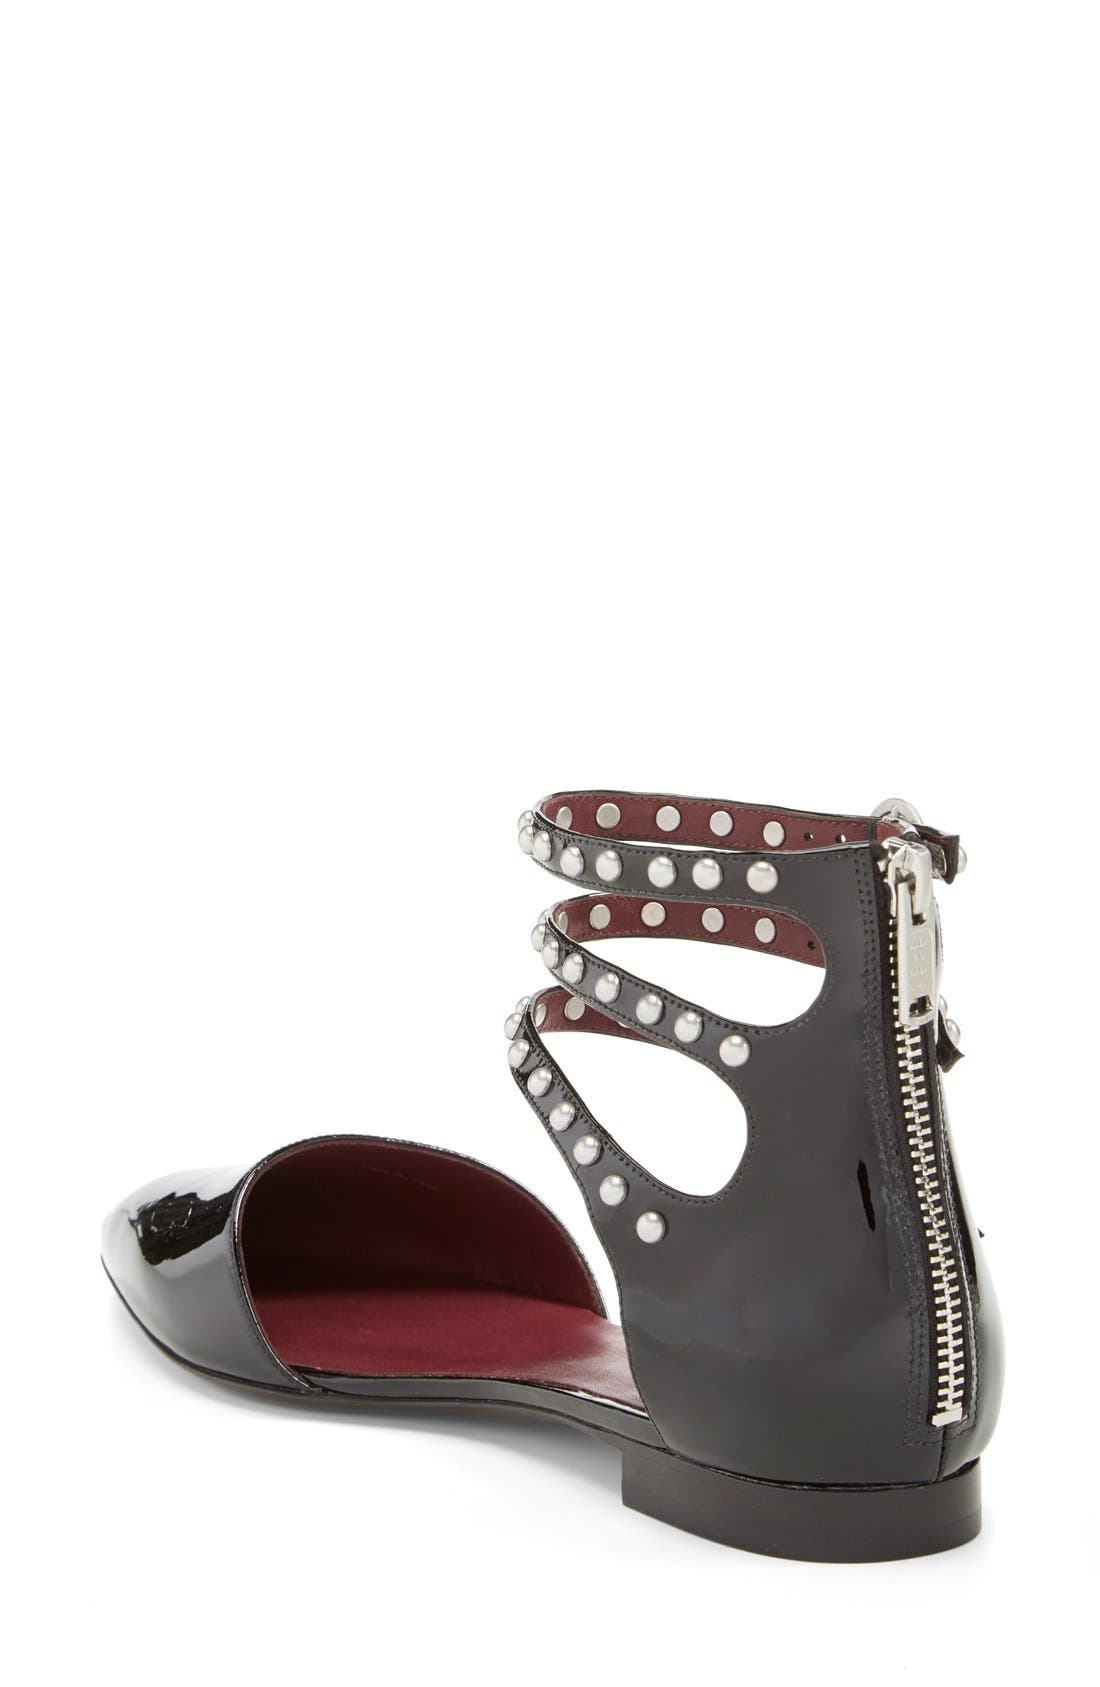 Alternate Image 2  - MARC BY MARC JACOBS 'Minetta' Ankle Strap Flat (Women)